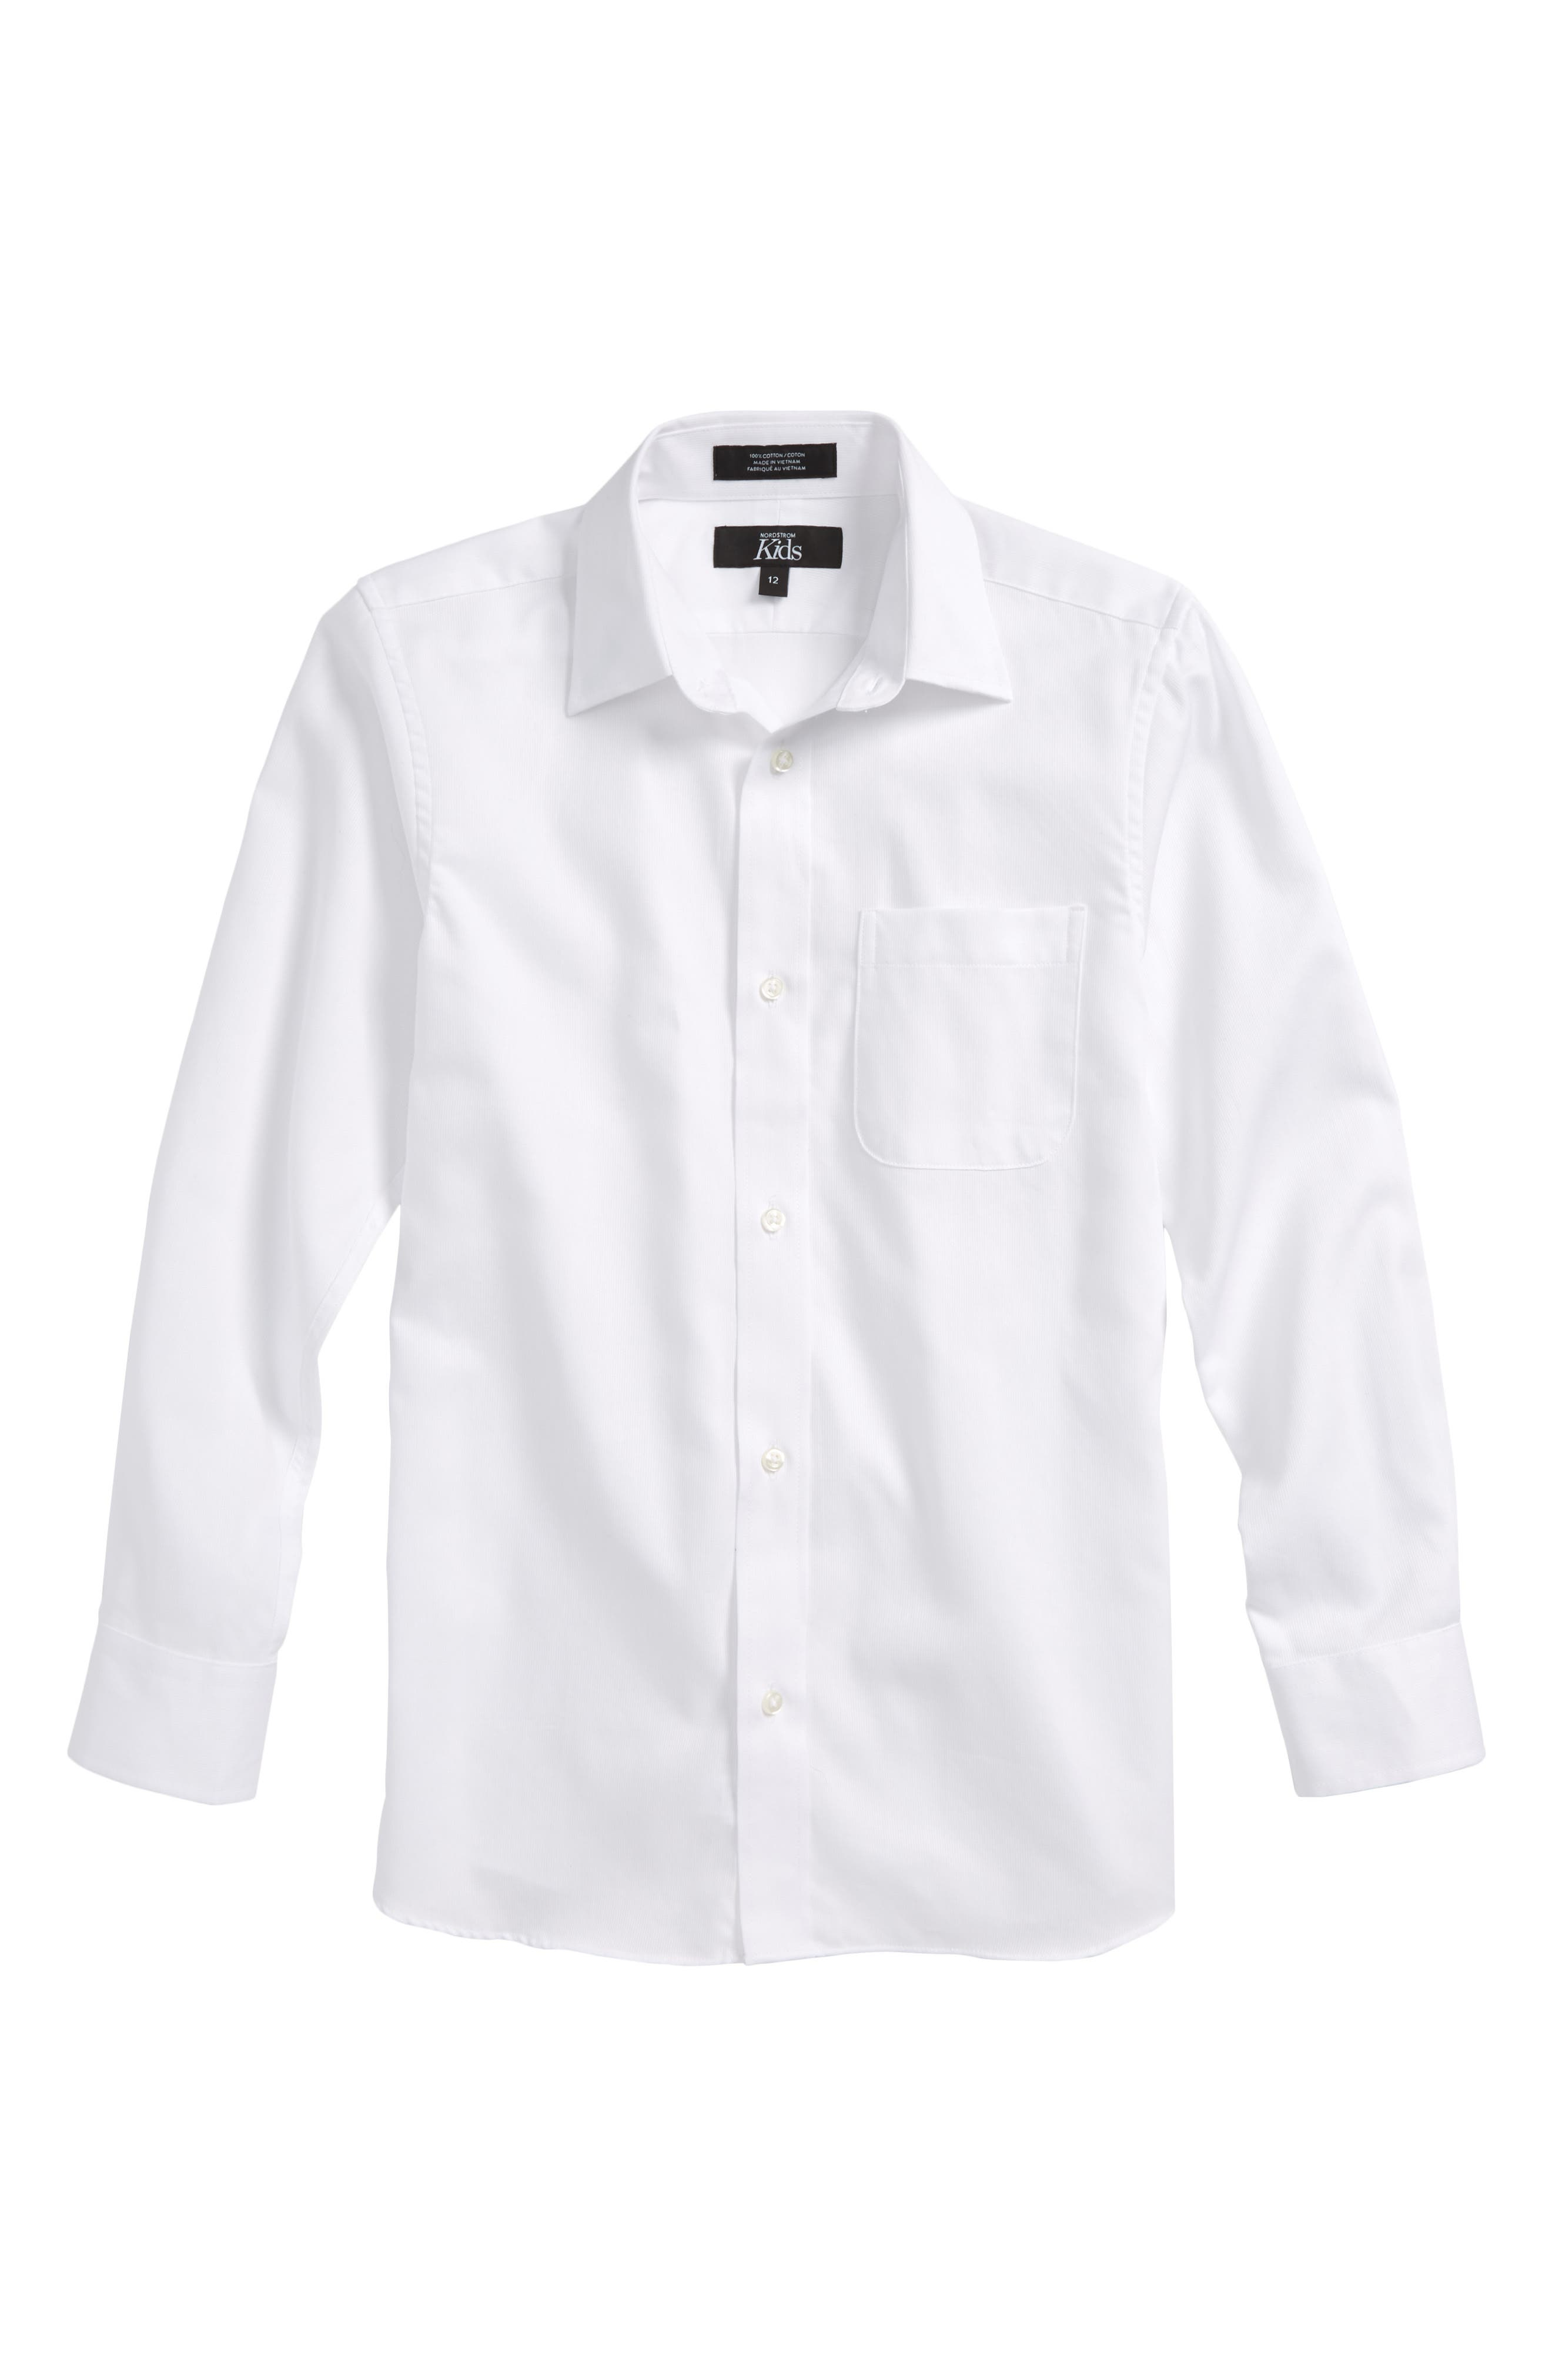 Main Image - Nordstrom Smartcare™ Dress Shirt (Big Boys)